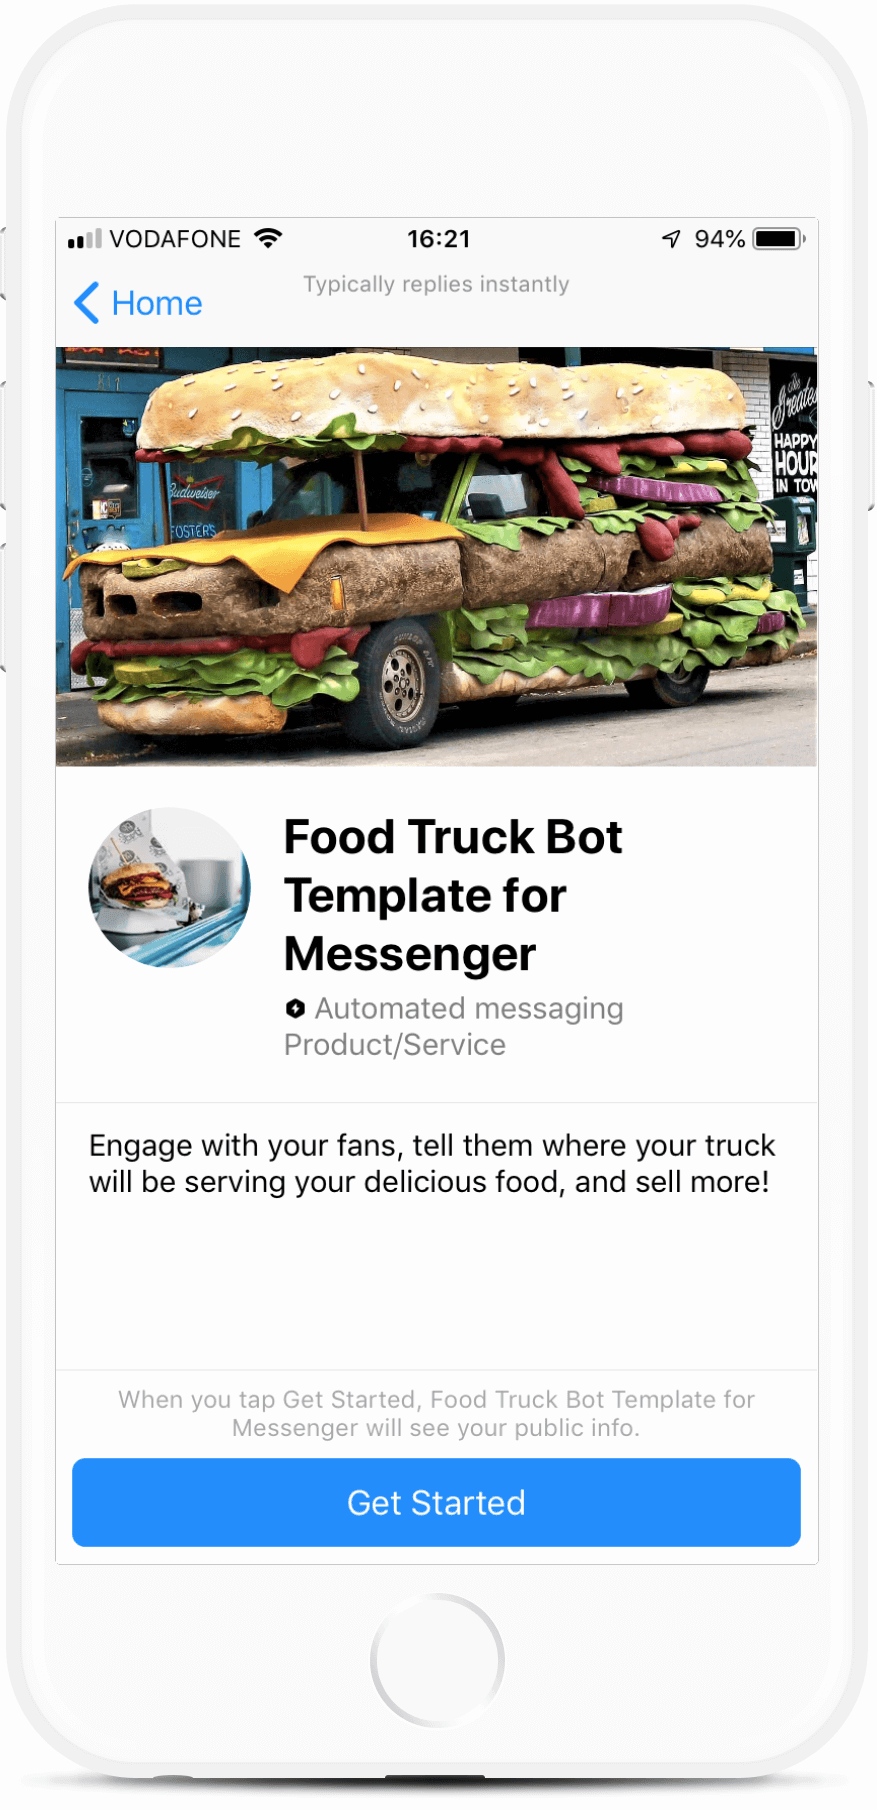 Food Truck Bot Template for Messenger